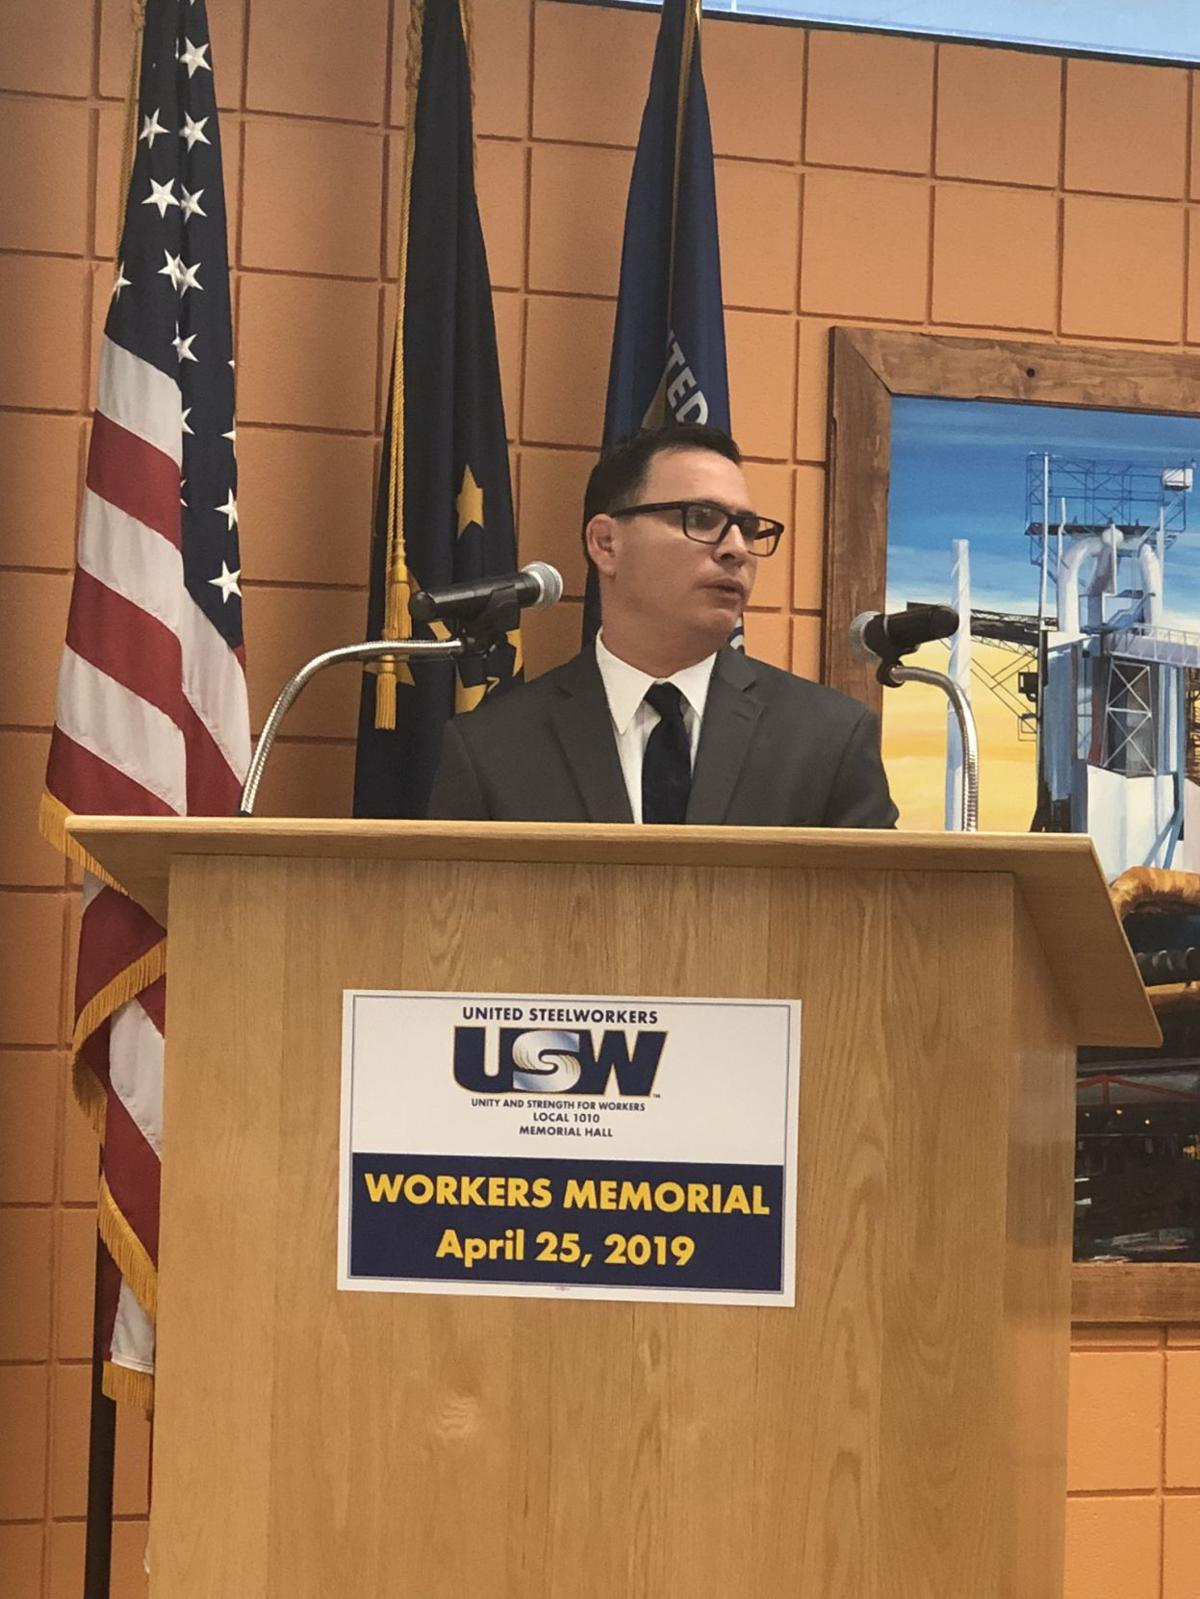 Union local mourns fallen steelworkers